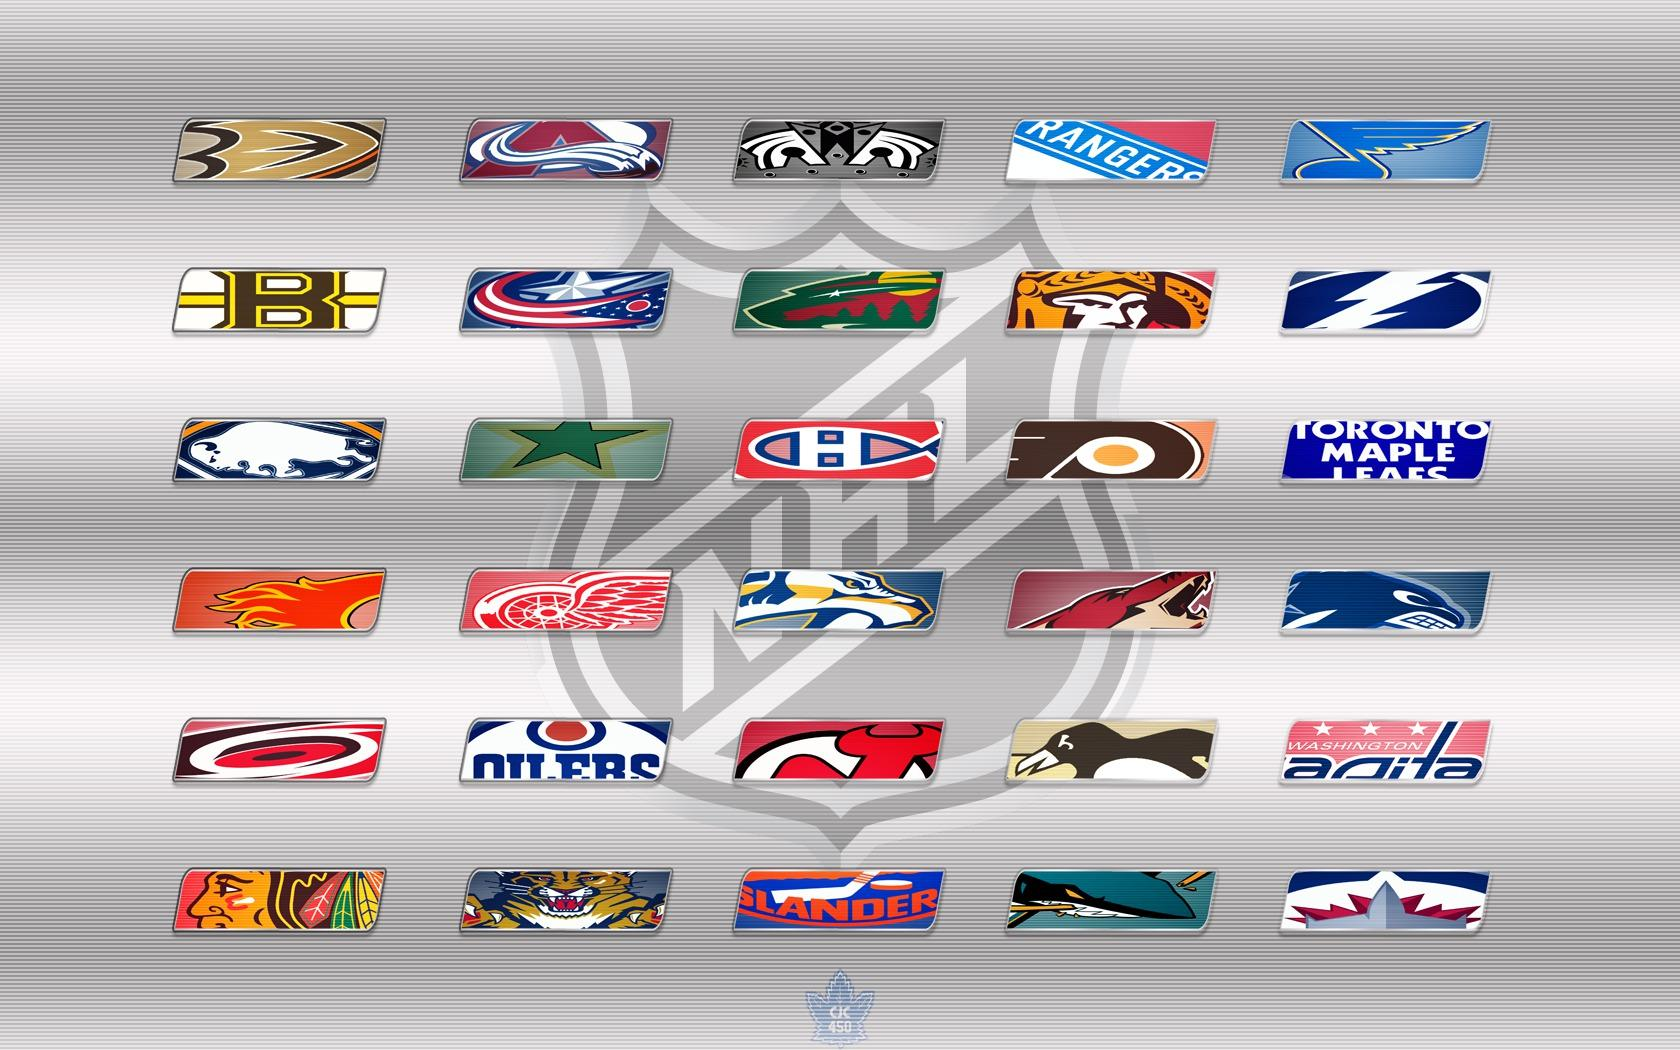 NHL TEAMS LOGOS WALLPAPER 2012   66505   HD Wallpapers 1680x1050